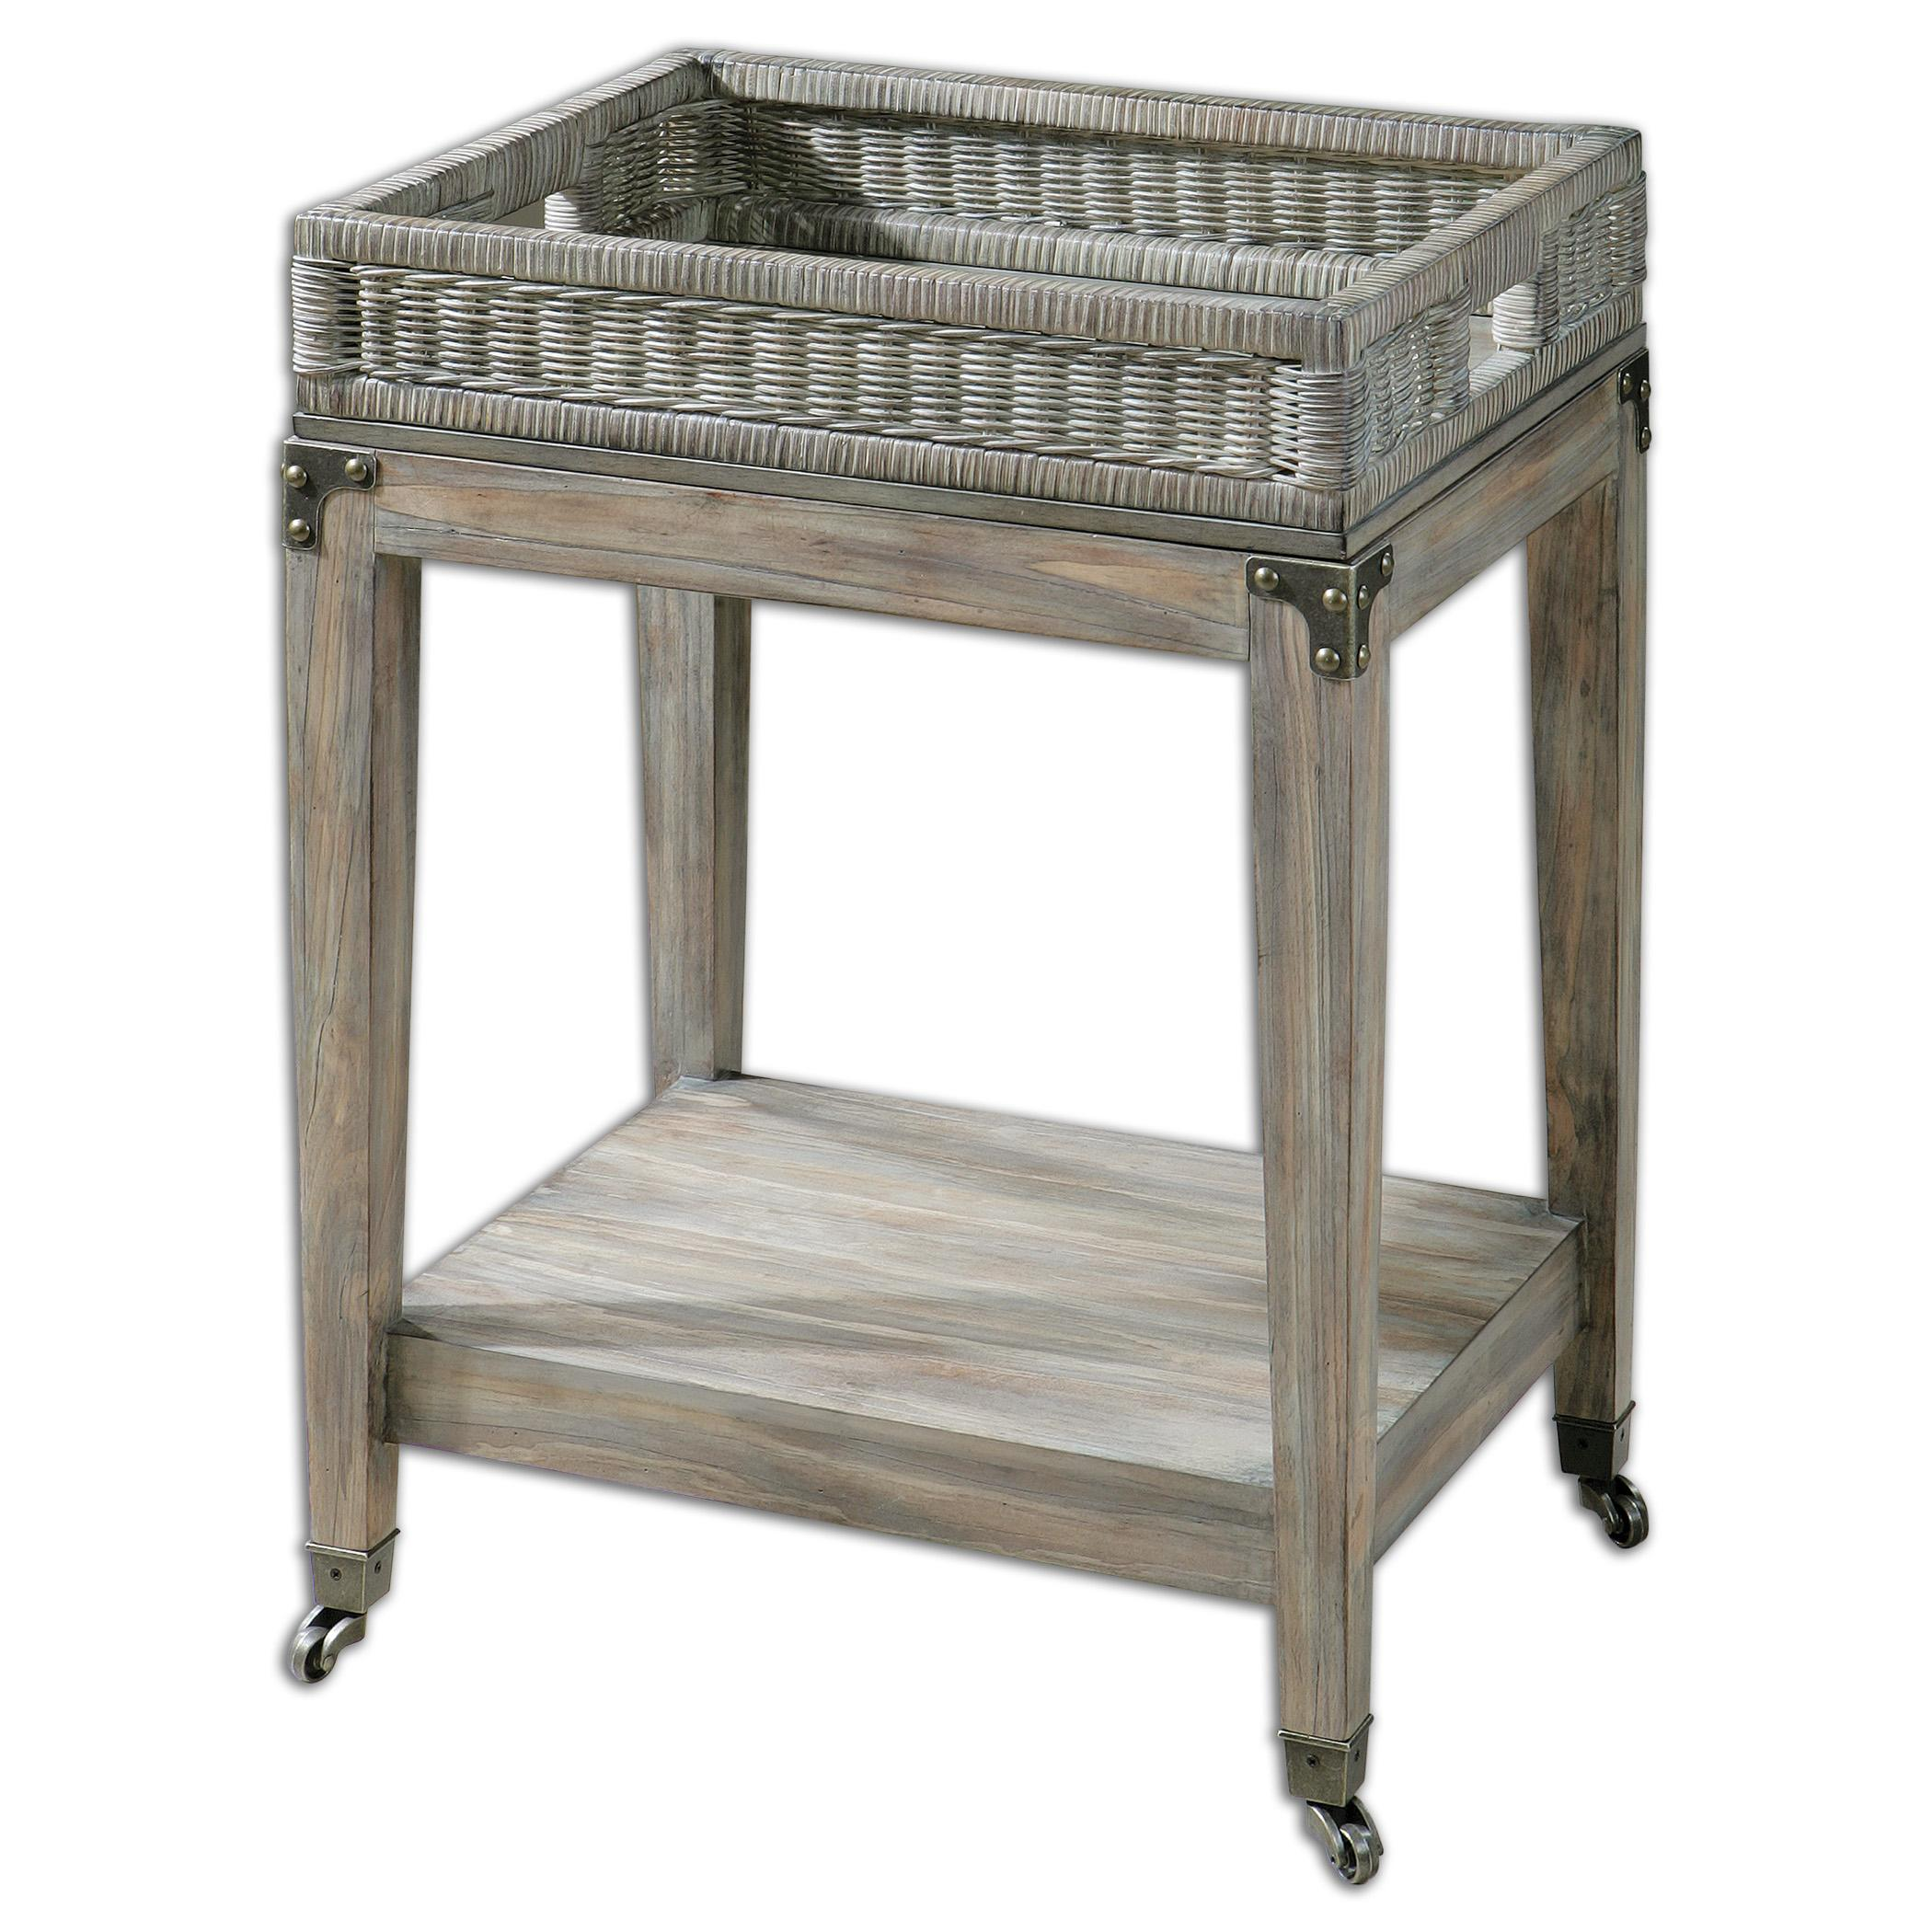 Uttermost Accent Furniture Davaughn Wooden Serving Cart - Item Number: 24431